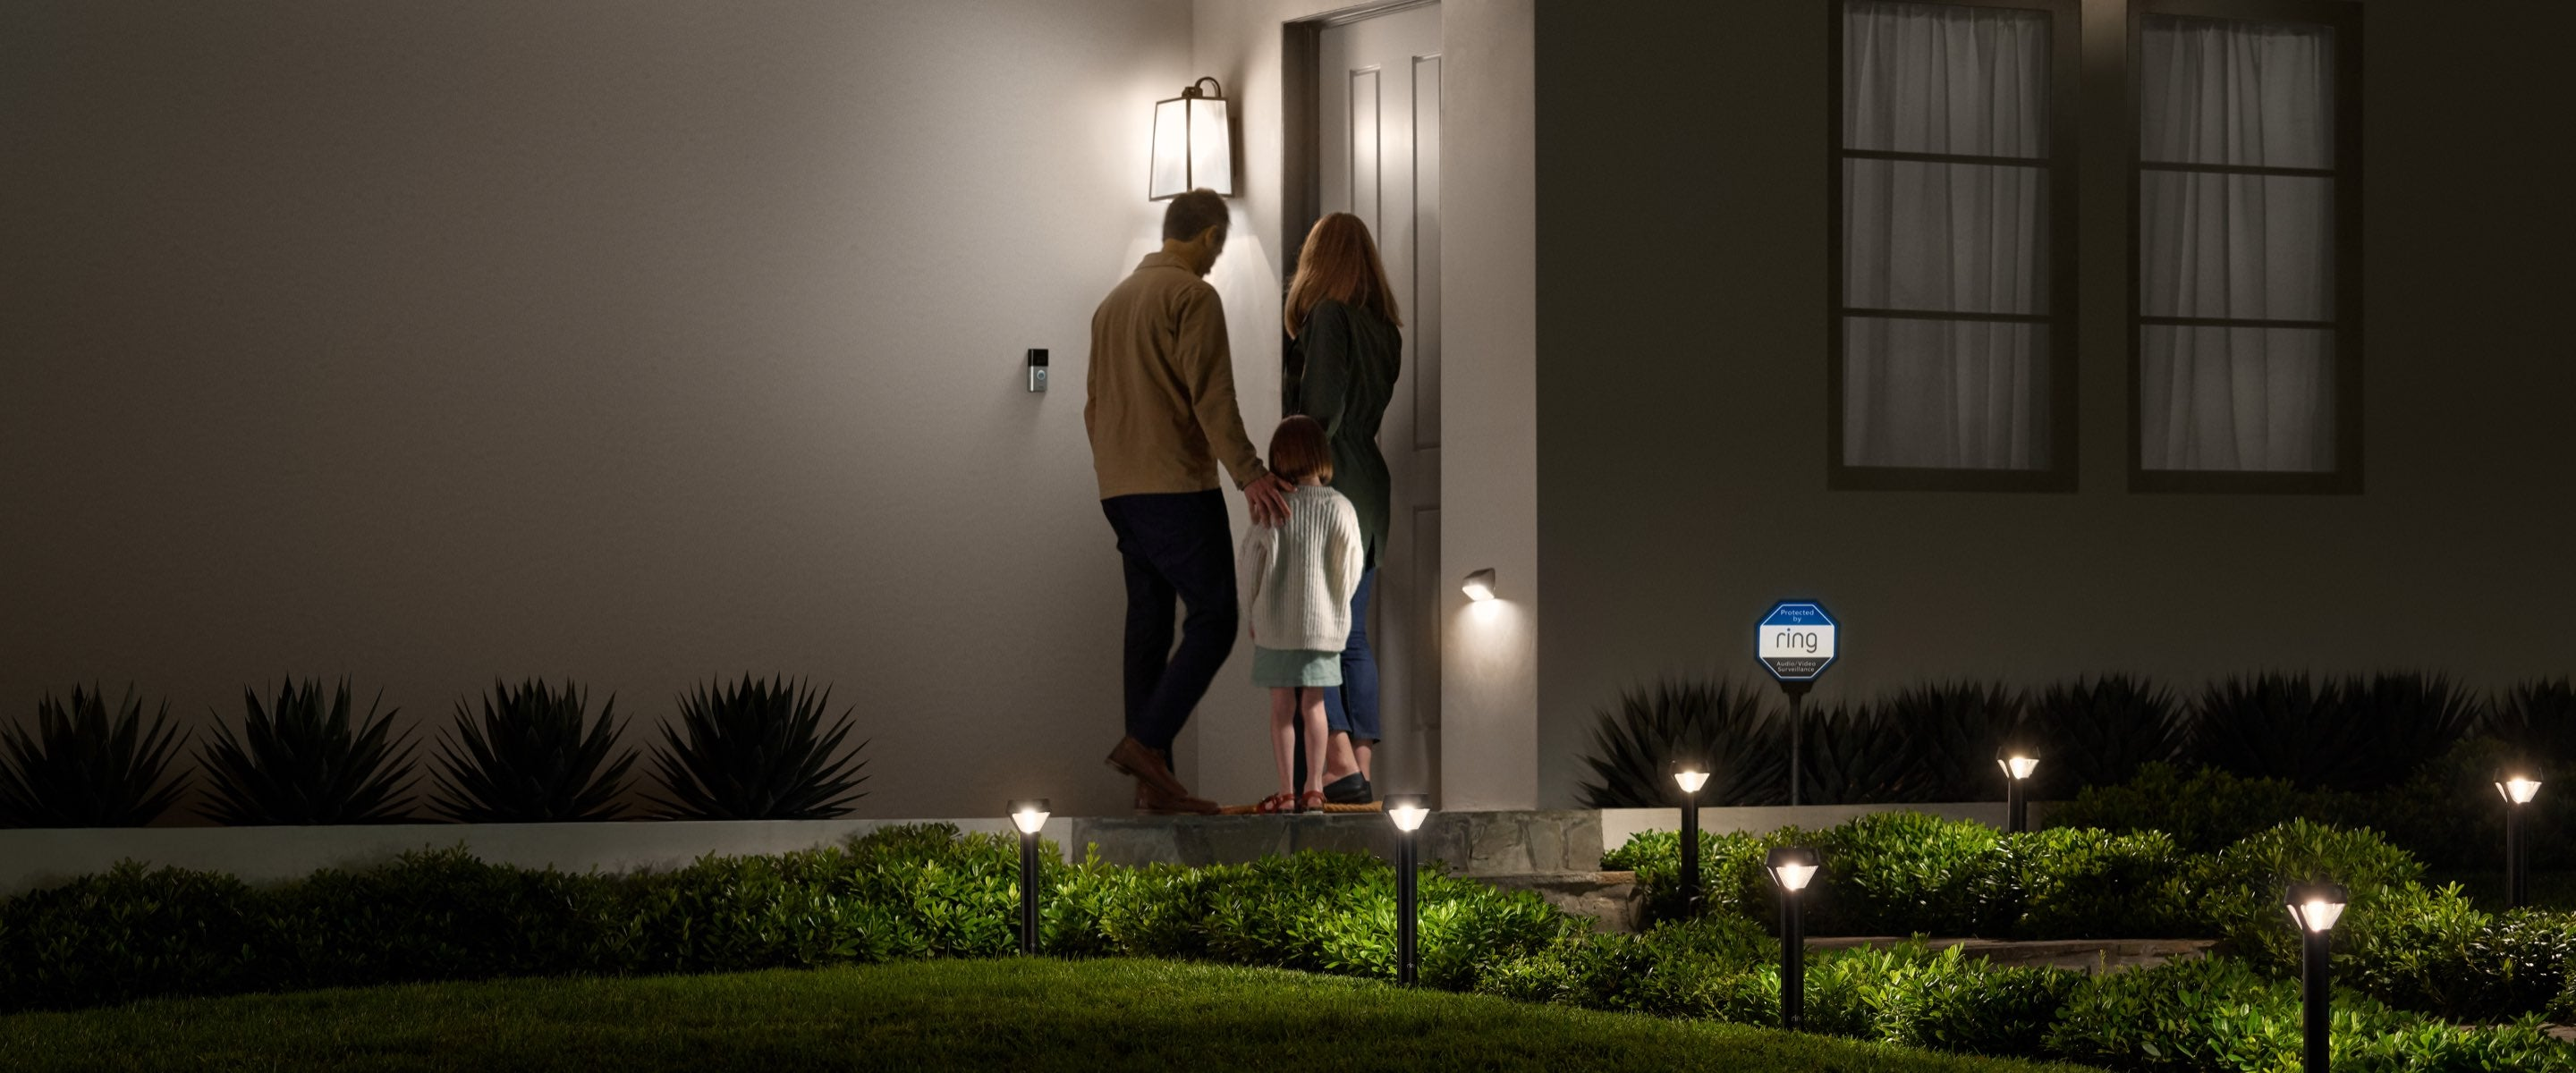 A family reaching home, all under the smart lights from ring